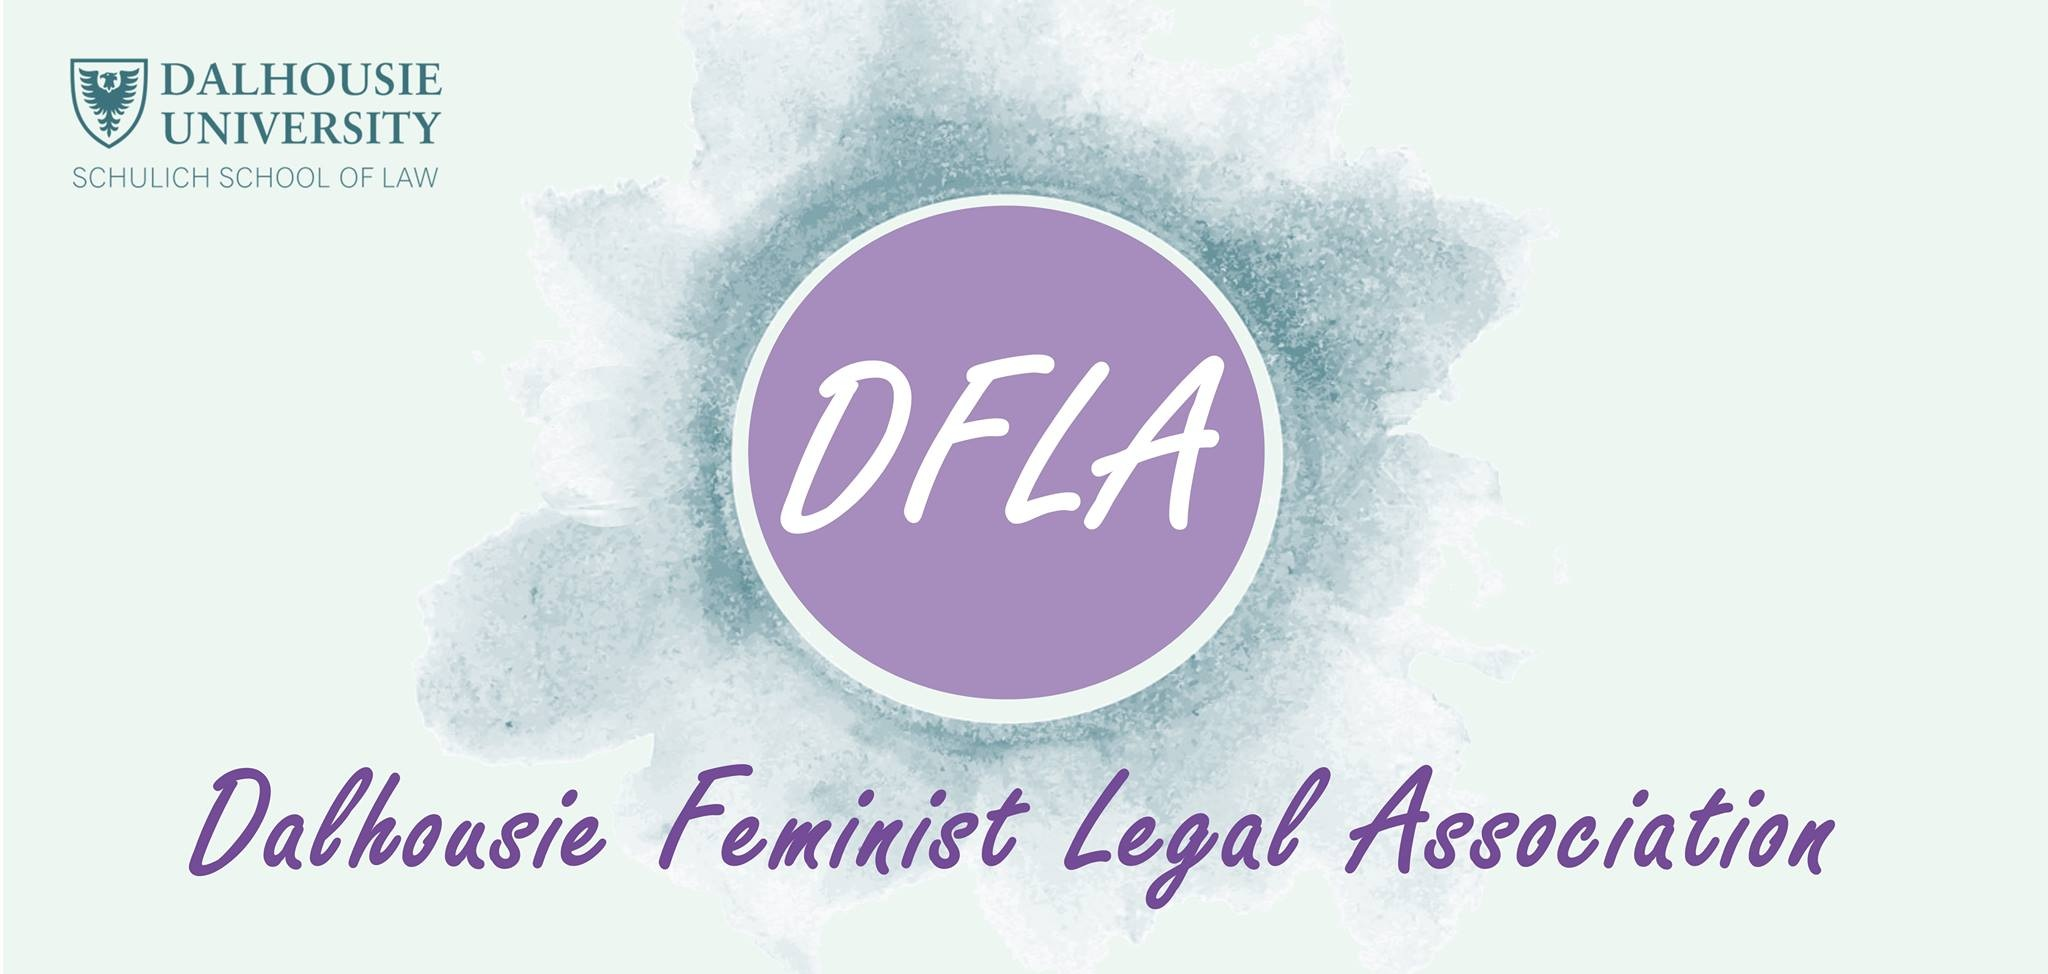 DFLA - Dalhousie Feminist Legal Association